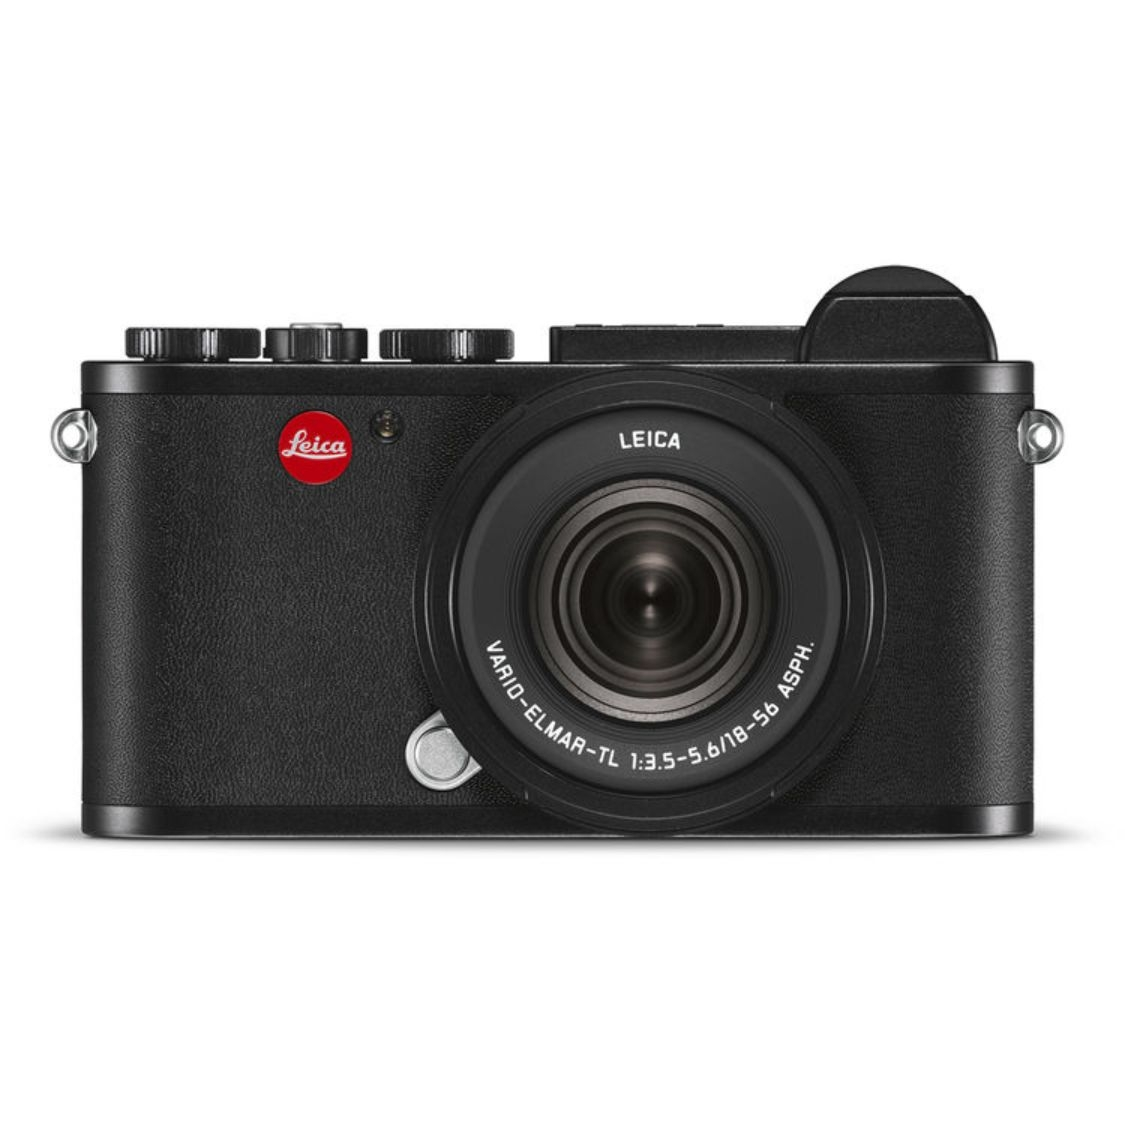 Leica CL Camera with 18-56mm Lens